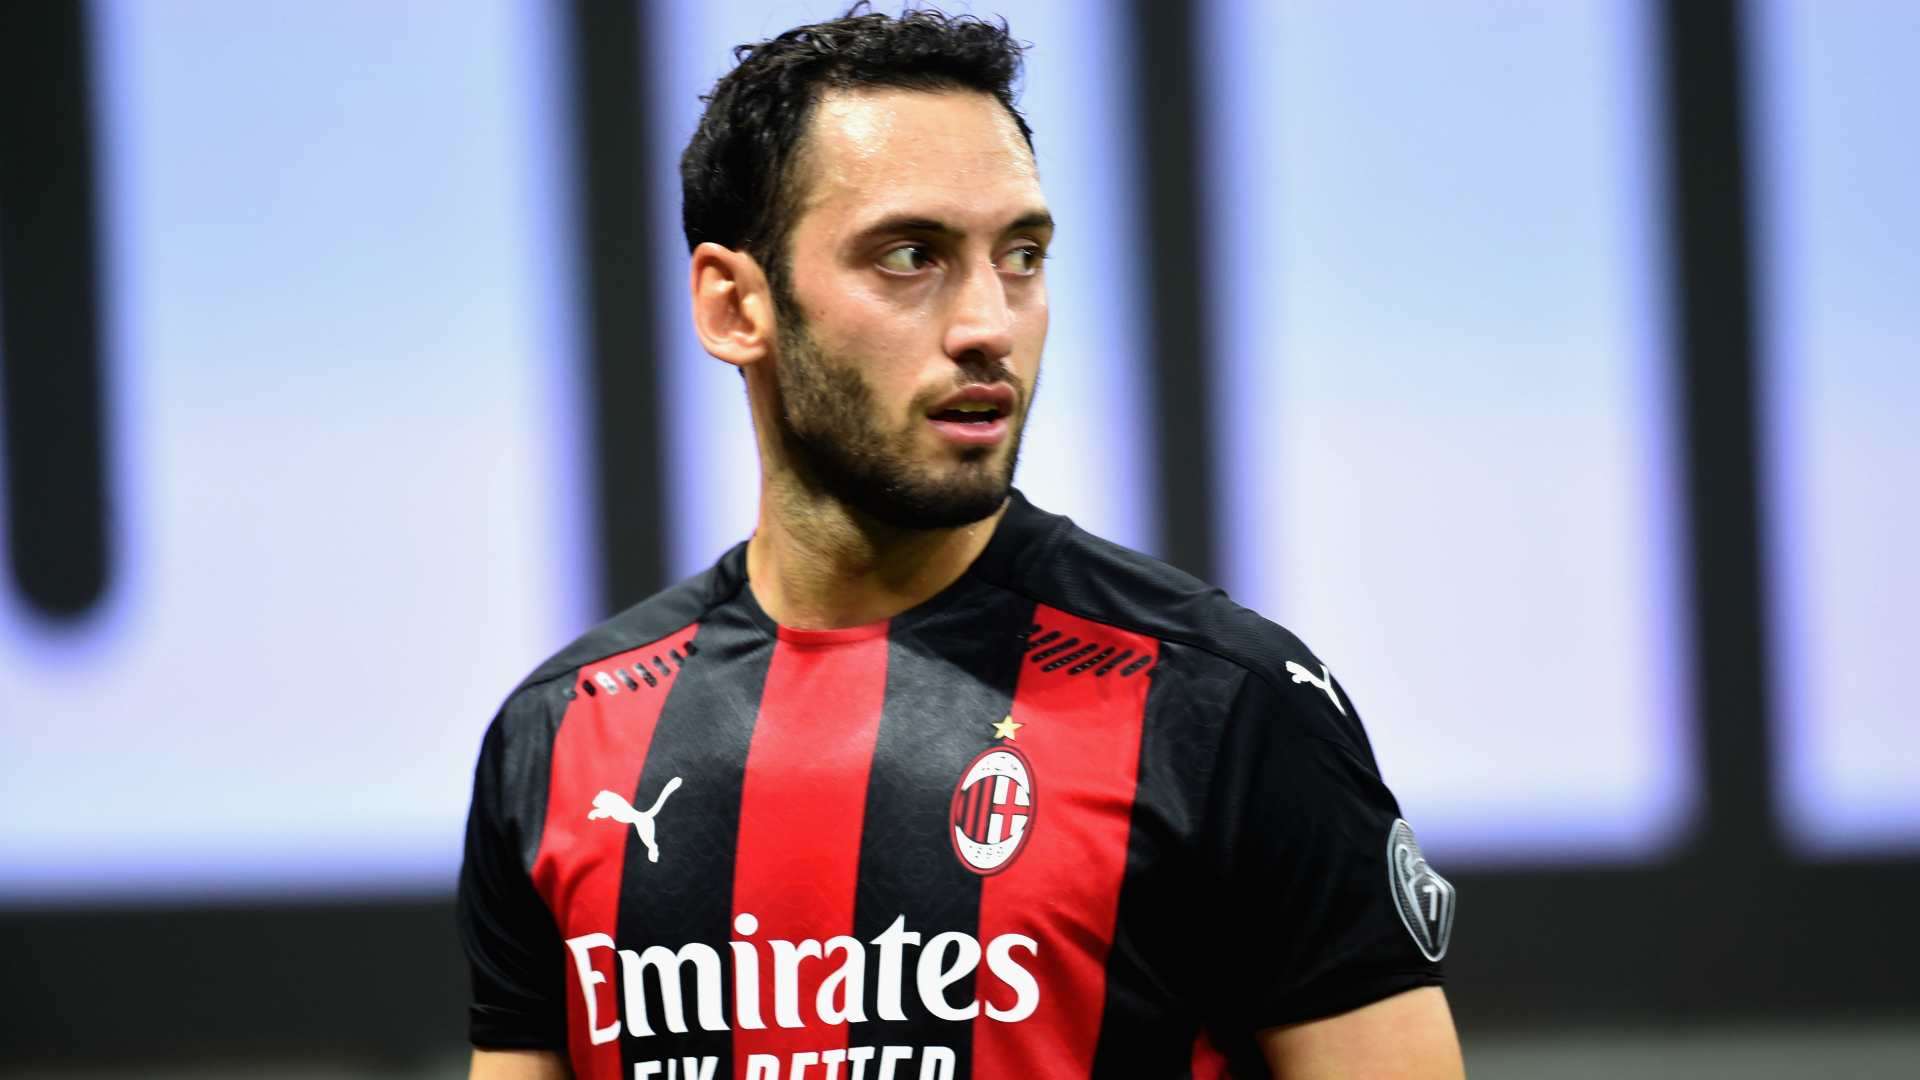 Calhanoglu to Man Utd? How the Milan star compares to Fernandes, Pogba and others